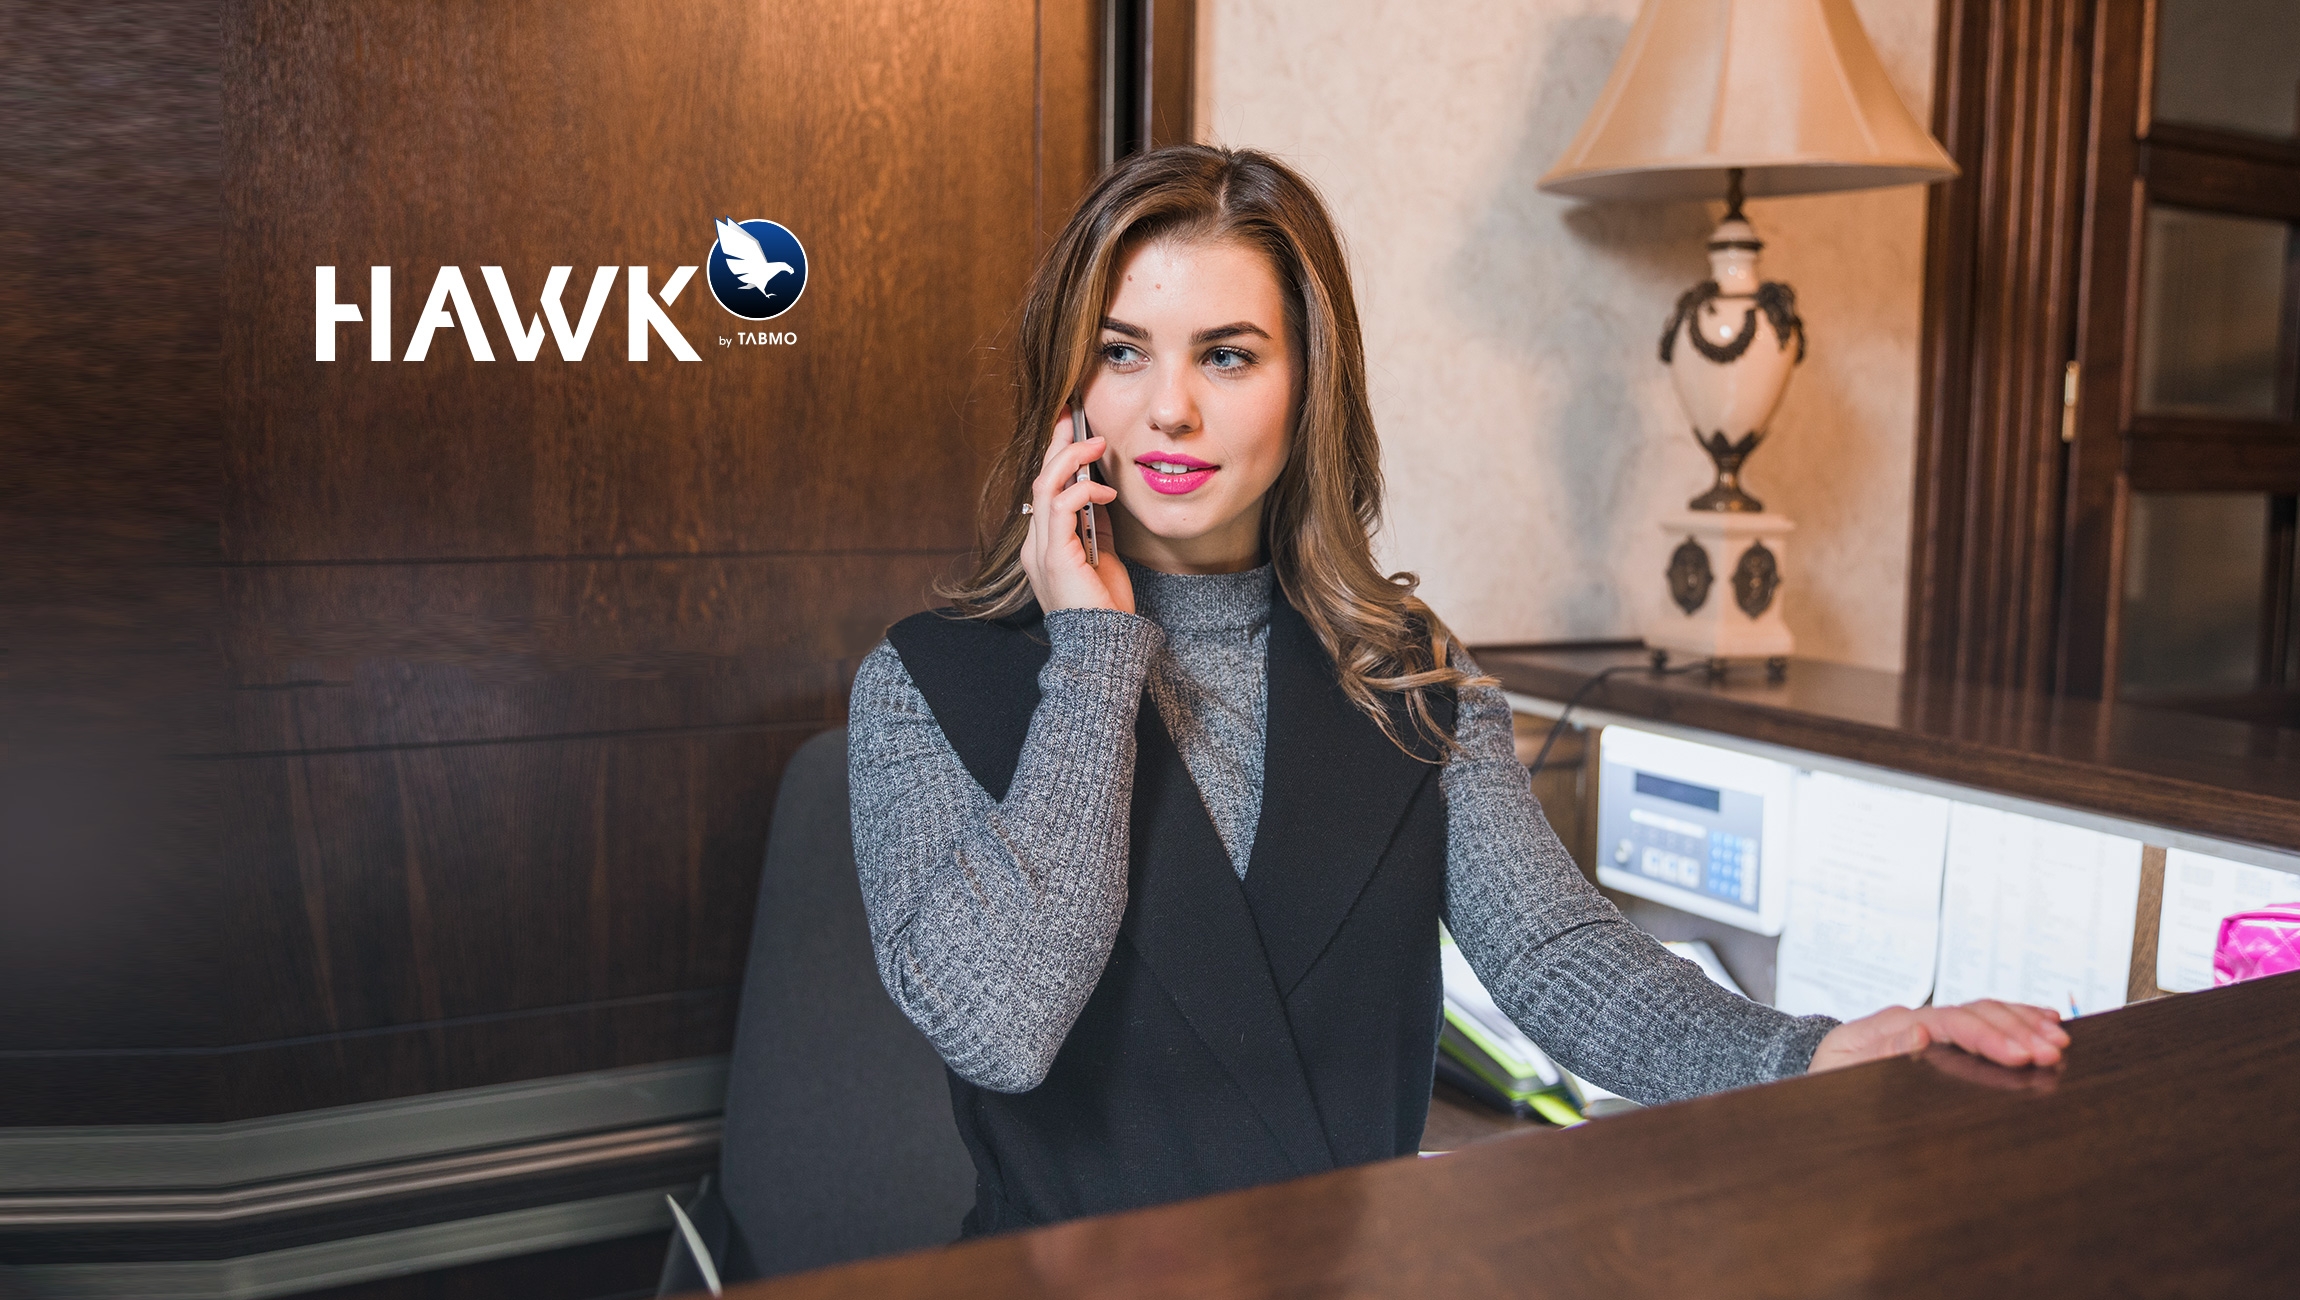 TabMo Activates Digital out of Home, Connected TV and Audio on Its Mobile Advertising Platform, Hawk